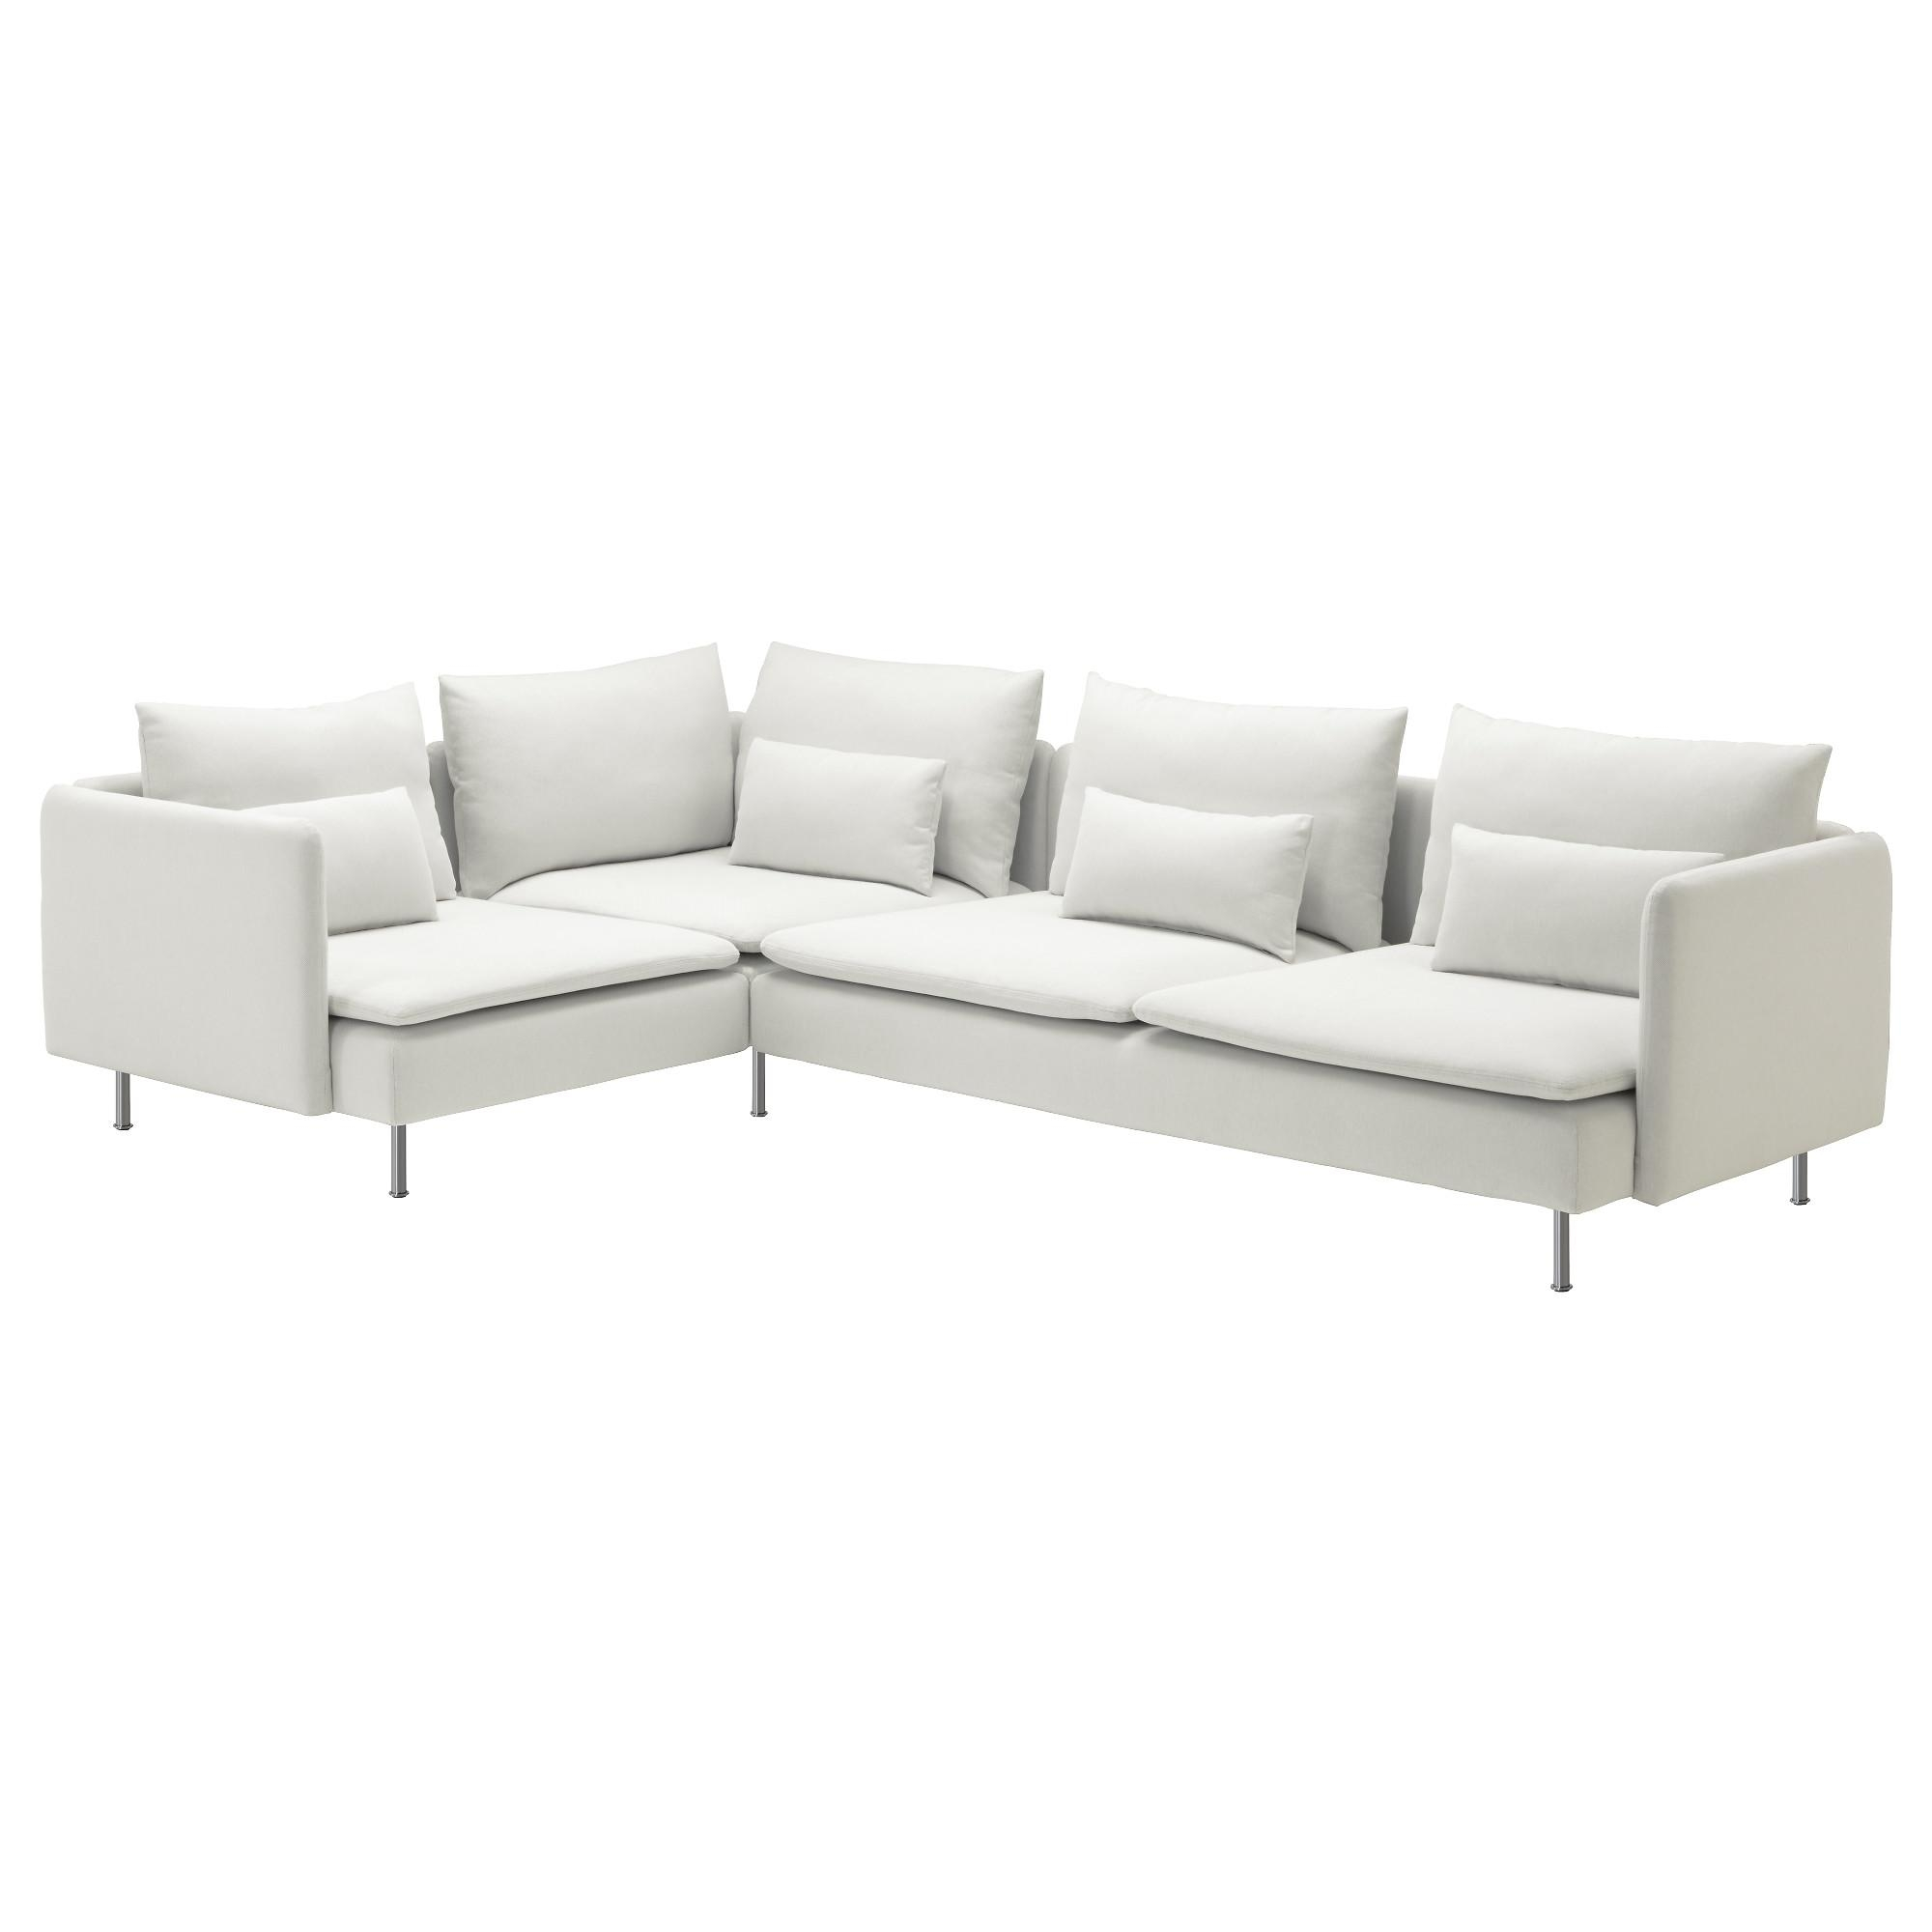 Sectional Sofas & Couches – Ikea With Regard To Ikea Sectional Sofa Bed (Image 16 of 20)